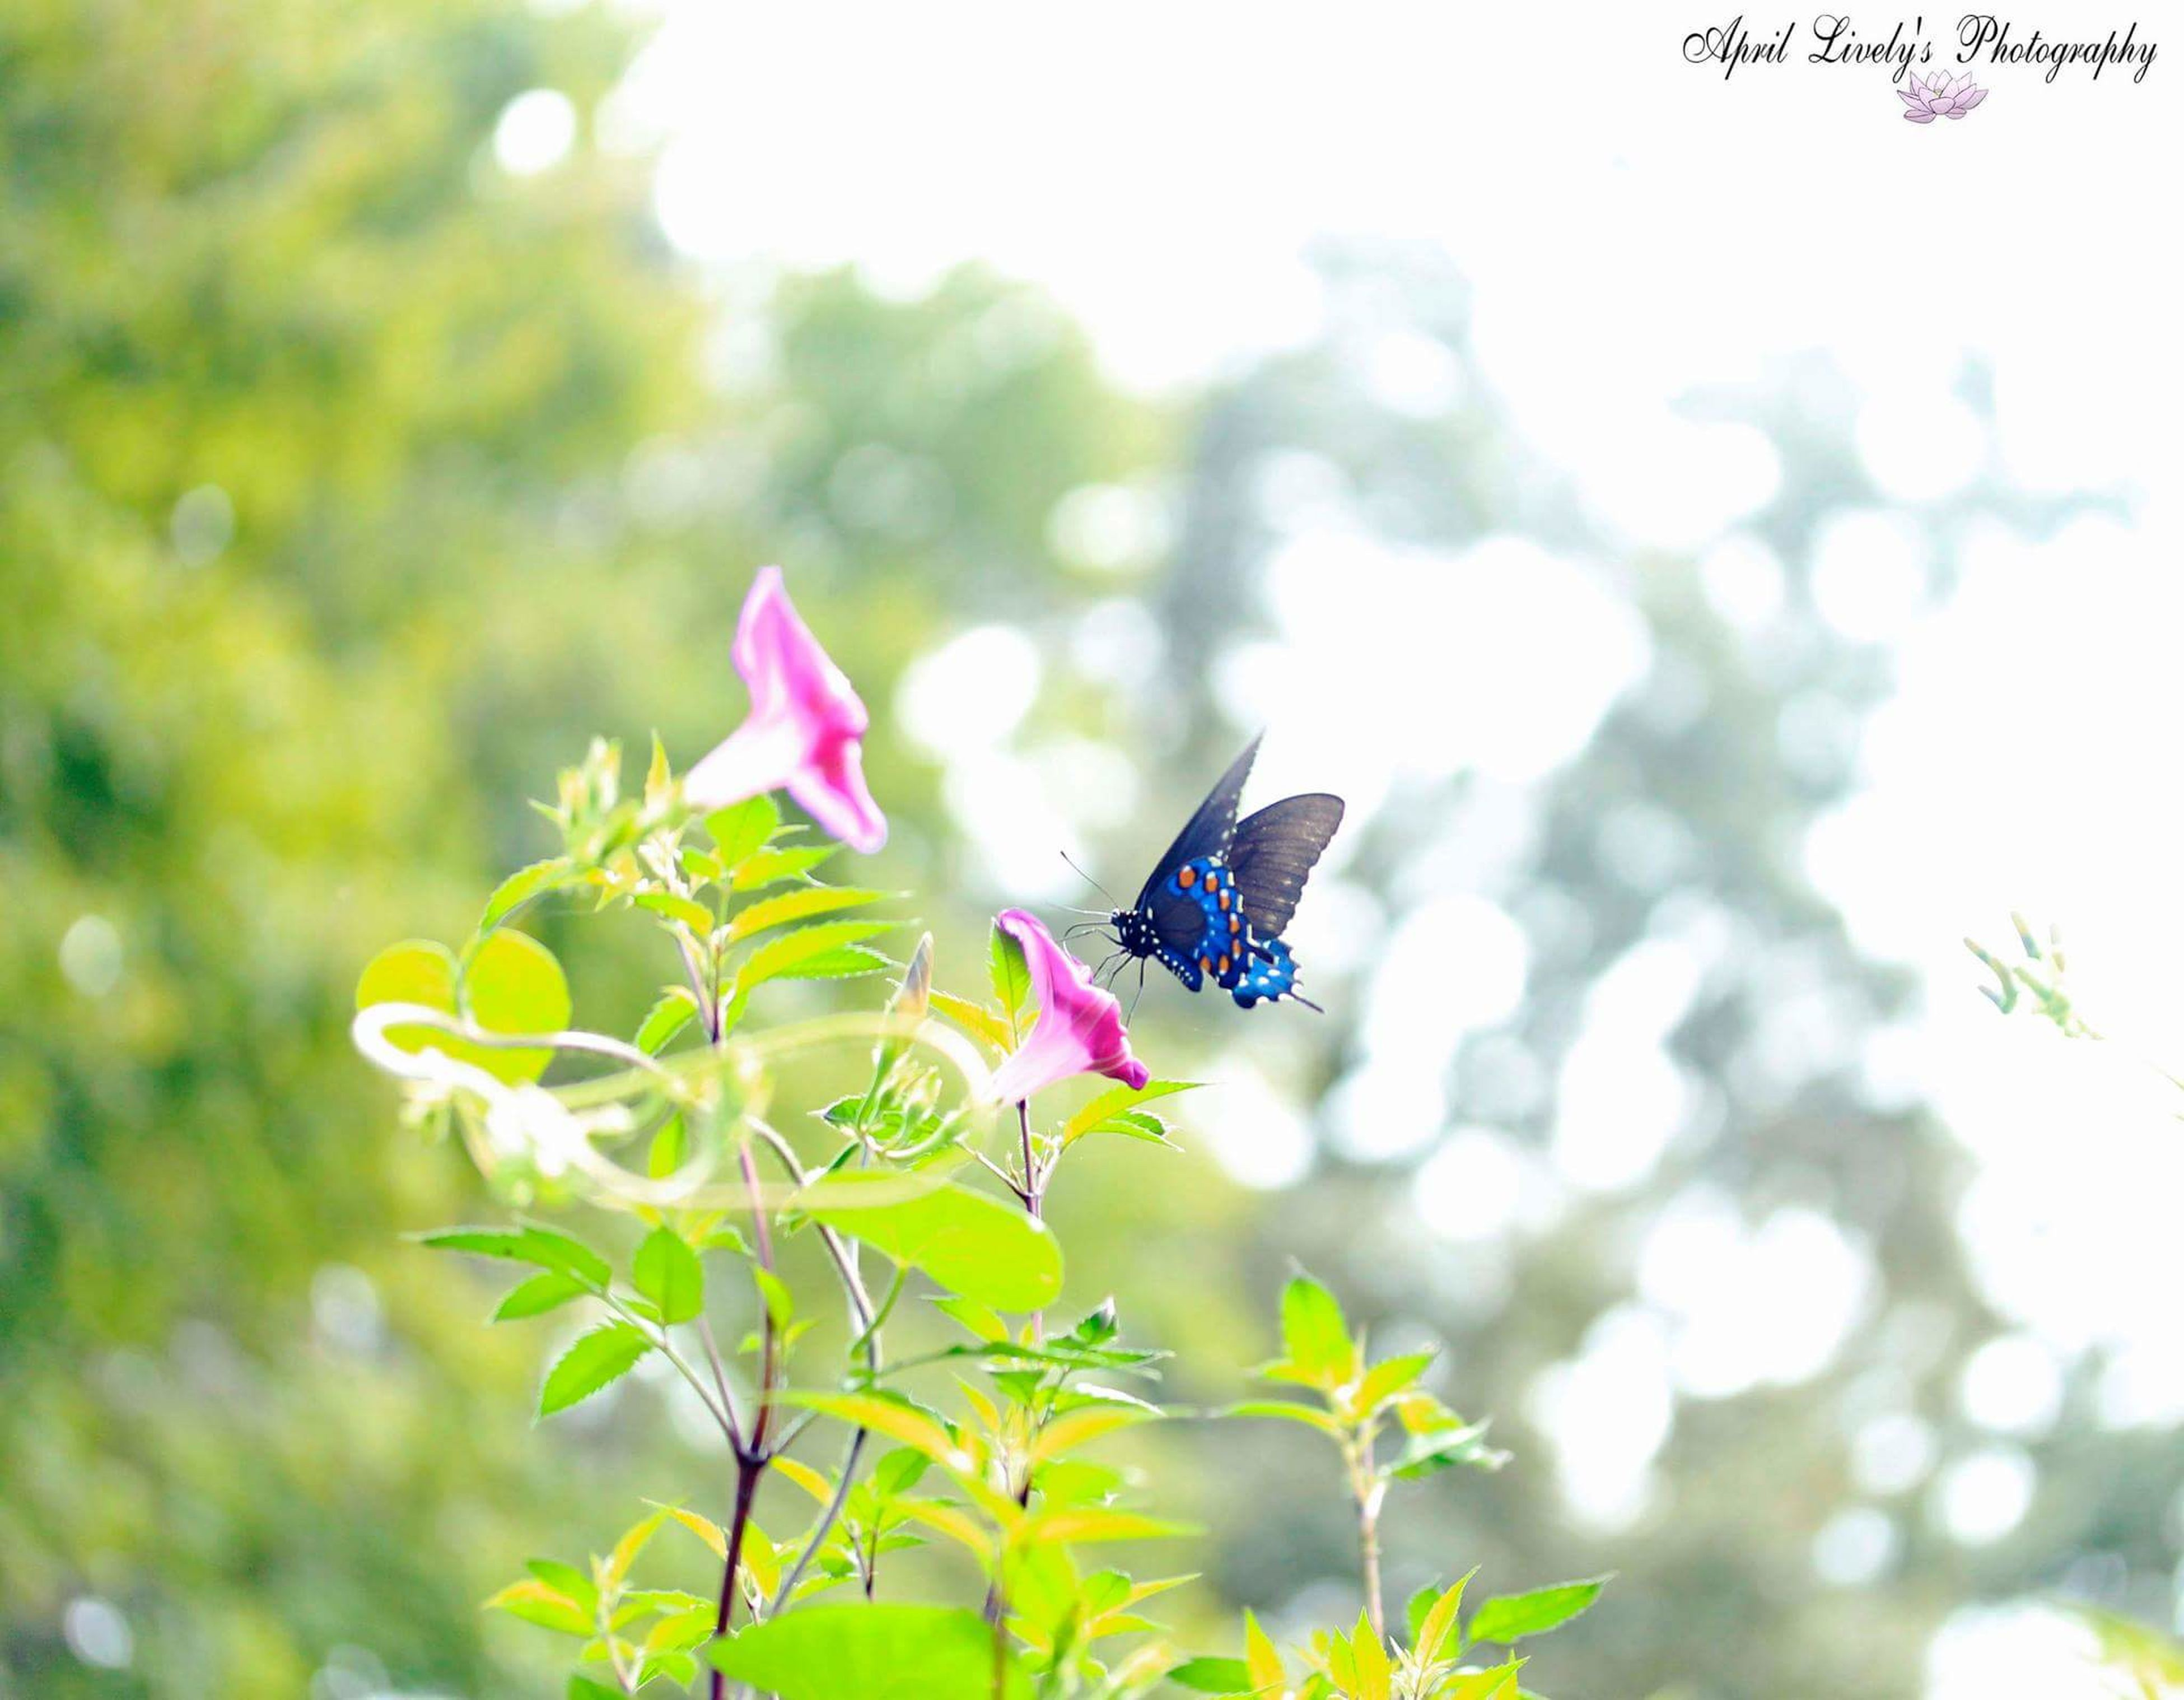 flower, focus on foreground, fragility, growth, close-up, plant, nature, beauty in nature, freshness, selective focus, leaf, petal, insect, animals in the wild, one animal, day, purple, outdoors, stem, blooming